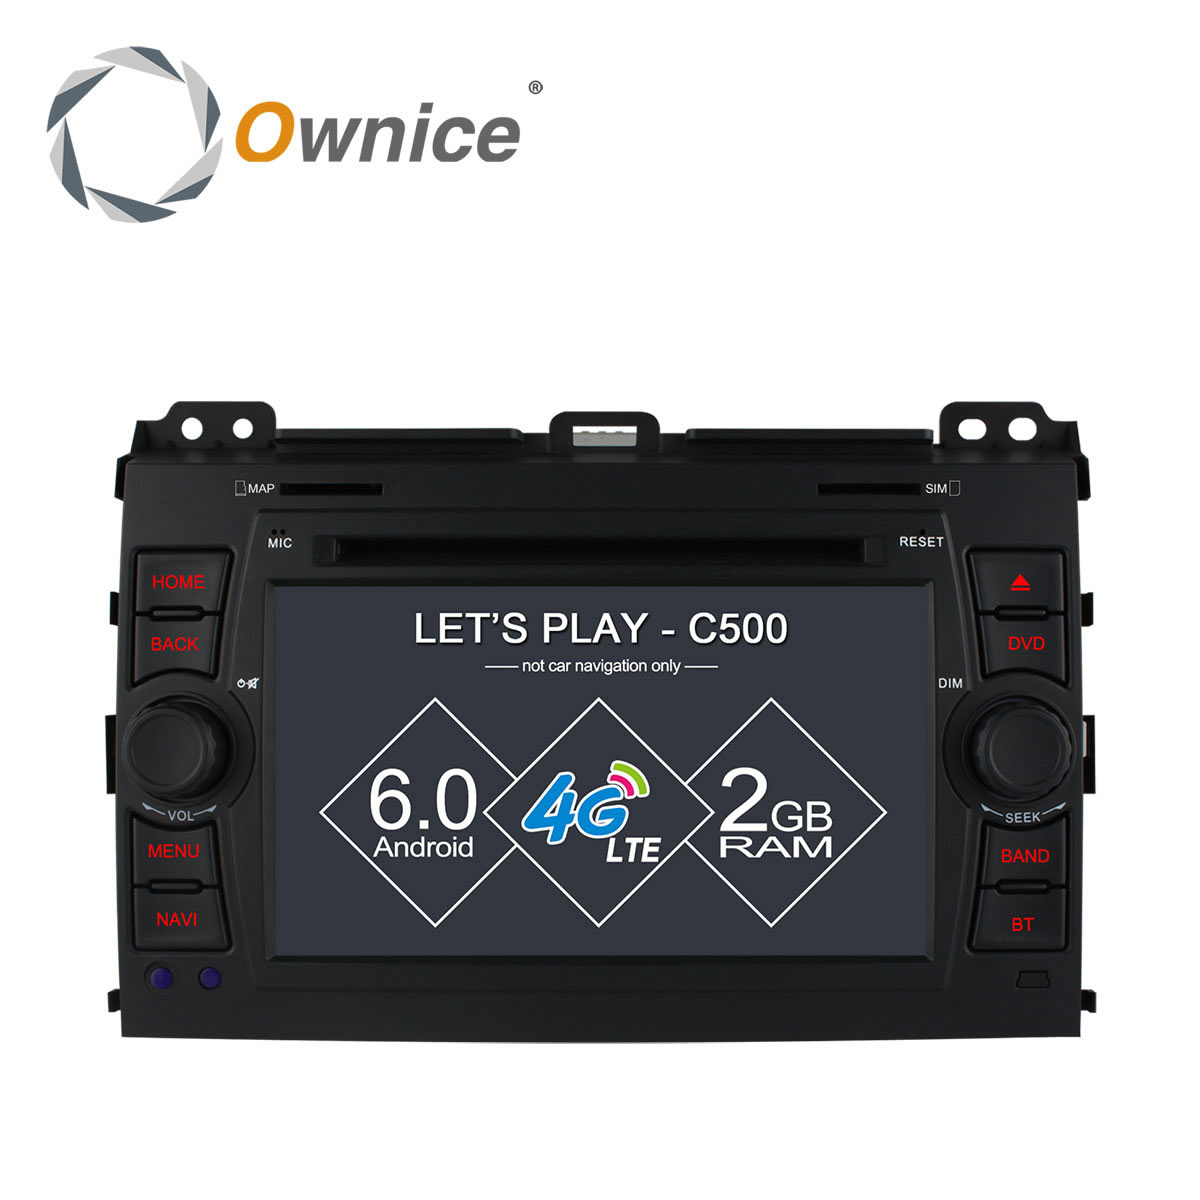 Ownice C500 Android 6.0 4 Core Car DVD player For Toyota Prado 120 2002 - 2009 GPS RADIO 4G SIM LTE GPS BT 2GB RAM 16GB ROM(China (Mainland))